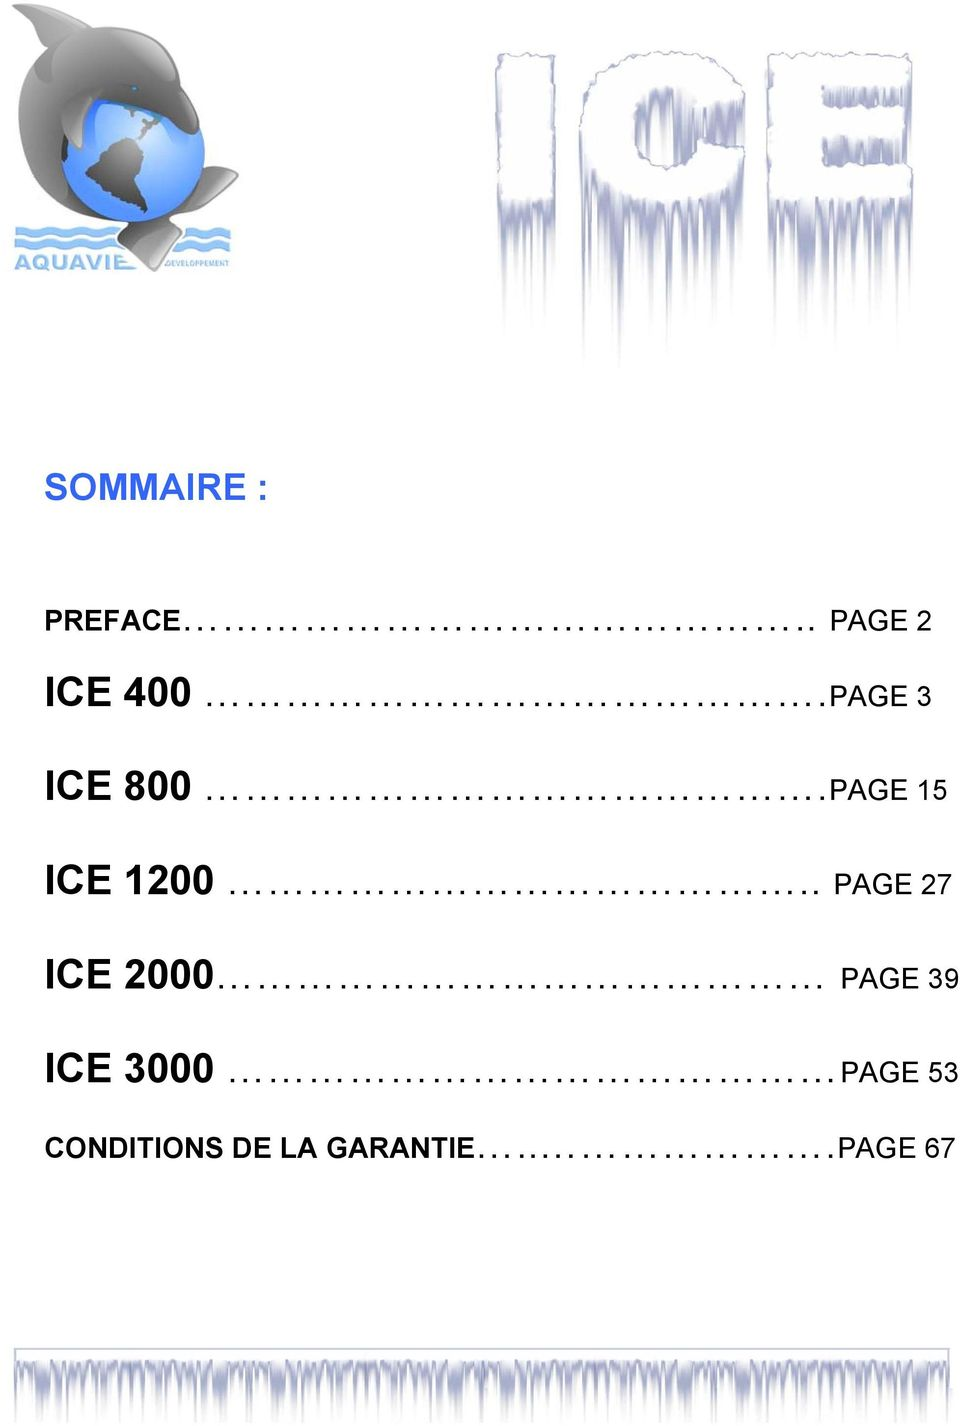 . PAGE 27 ICE 2000 PAGE 39 ICE 3000